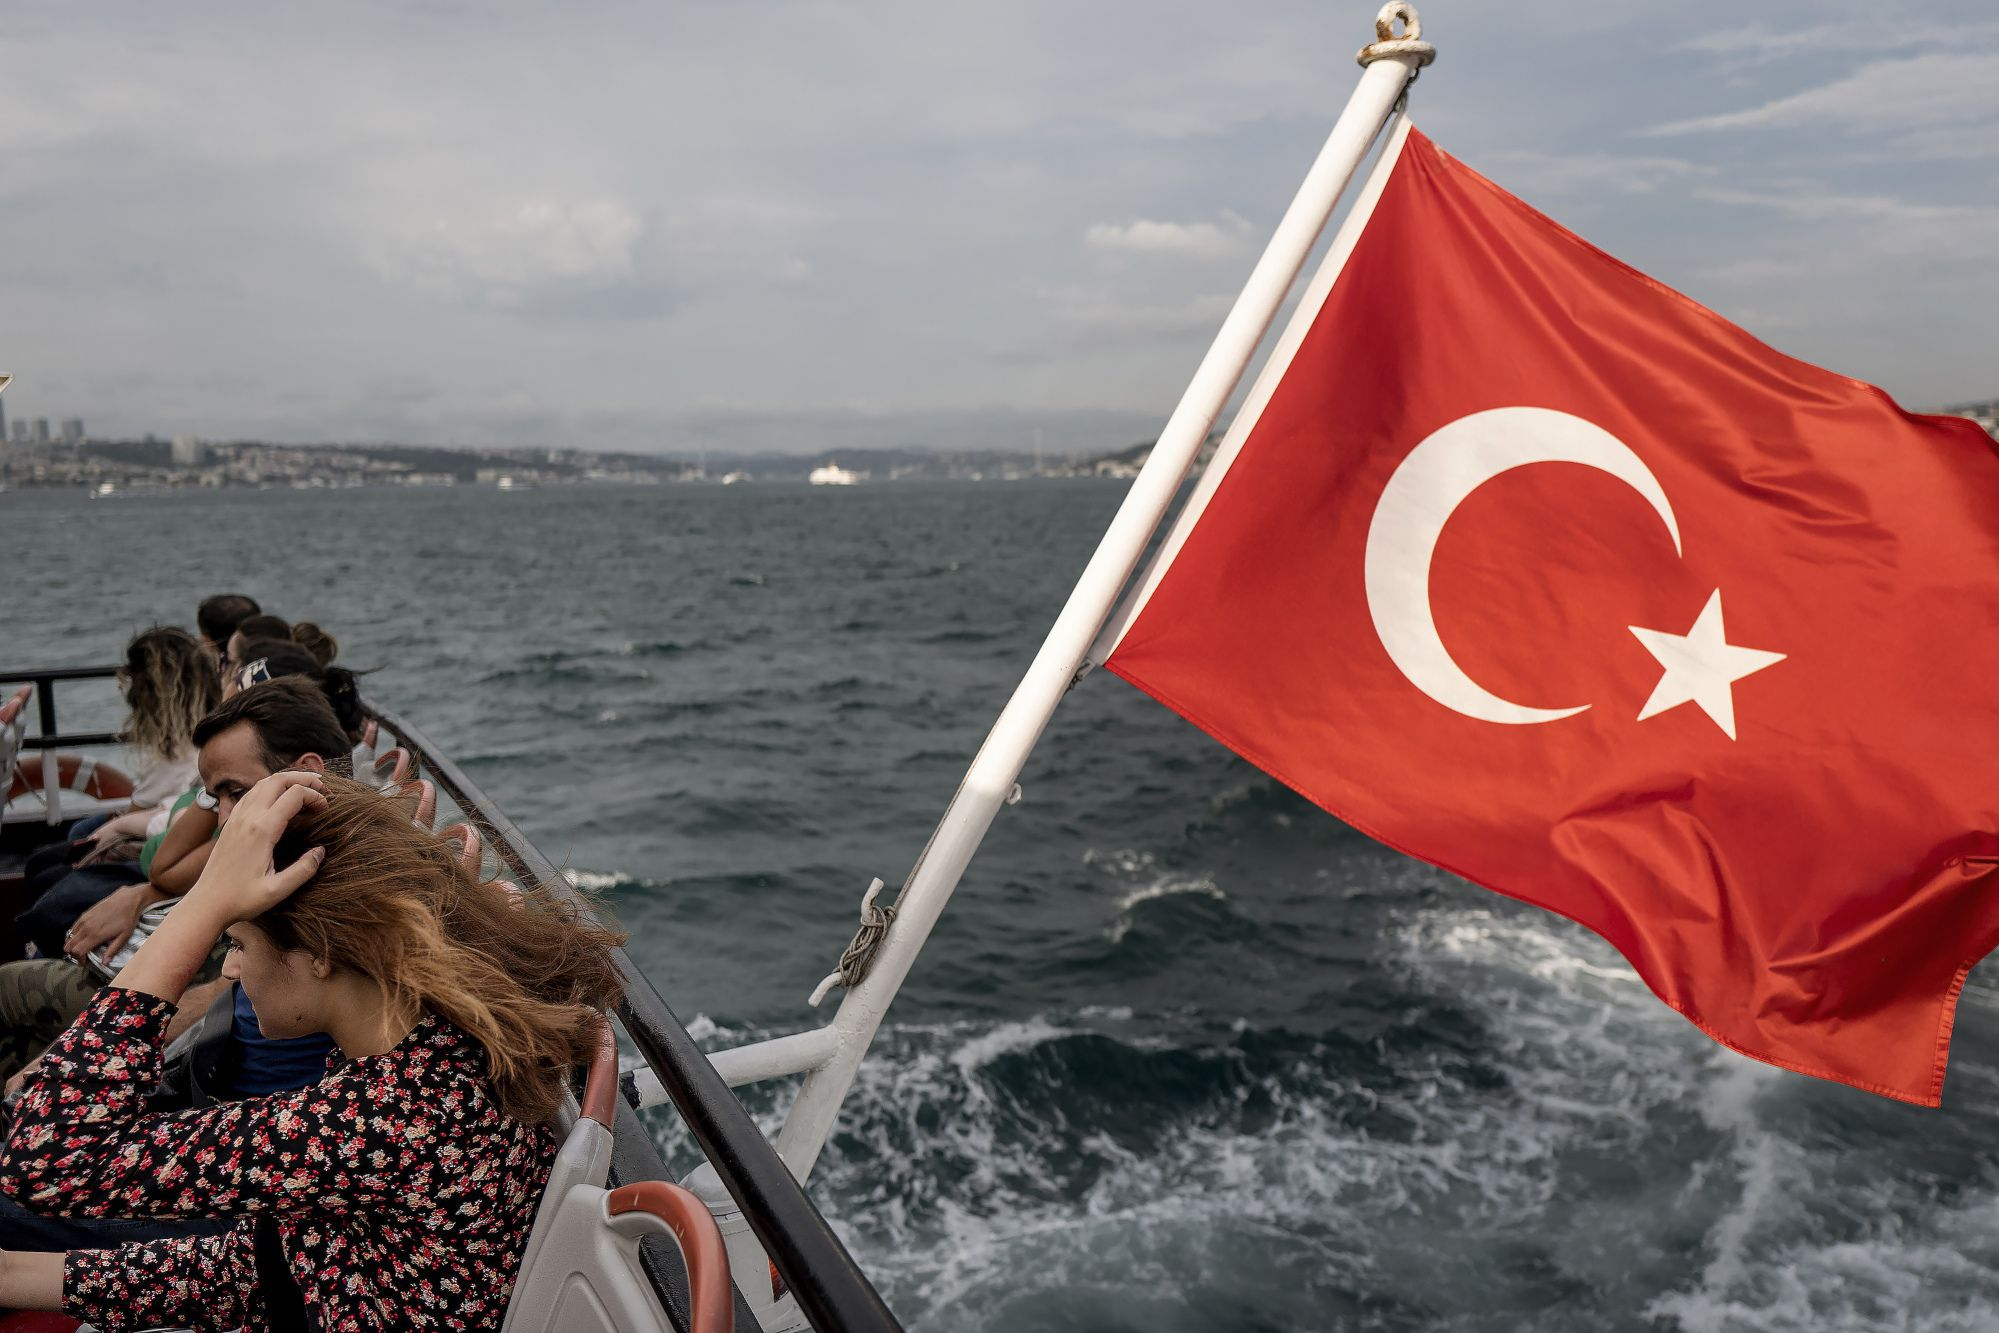 City commuters cross the Bosporus Strait on a passenger ferry flying Turkey's national flag from its stern in Istanbul, Turkey, on Friday, Aug. 17, 2018. Turkish President Recep Tayyip Erdogan argued citizens should buy gold, then he said sell. Add dramatic swings in the lira, and the country's traders are now enthusiastically doing both. Photographer: Ismail Ferdous/Bloomberg